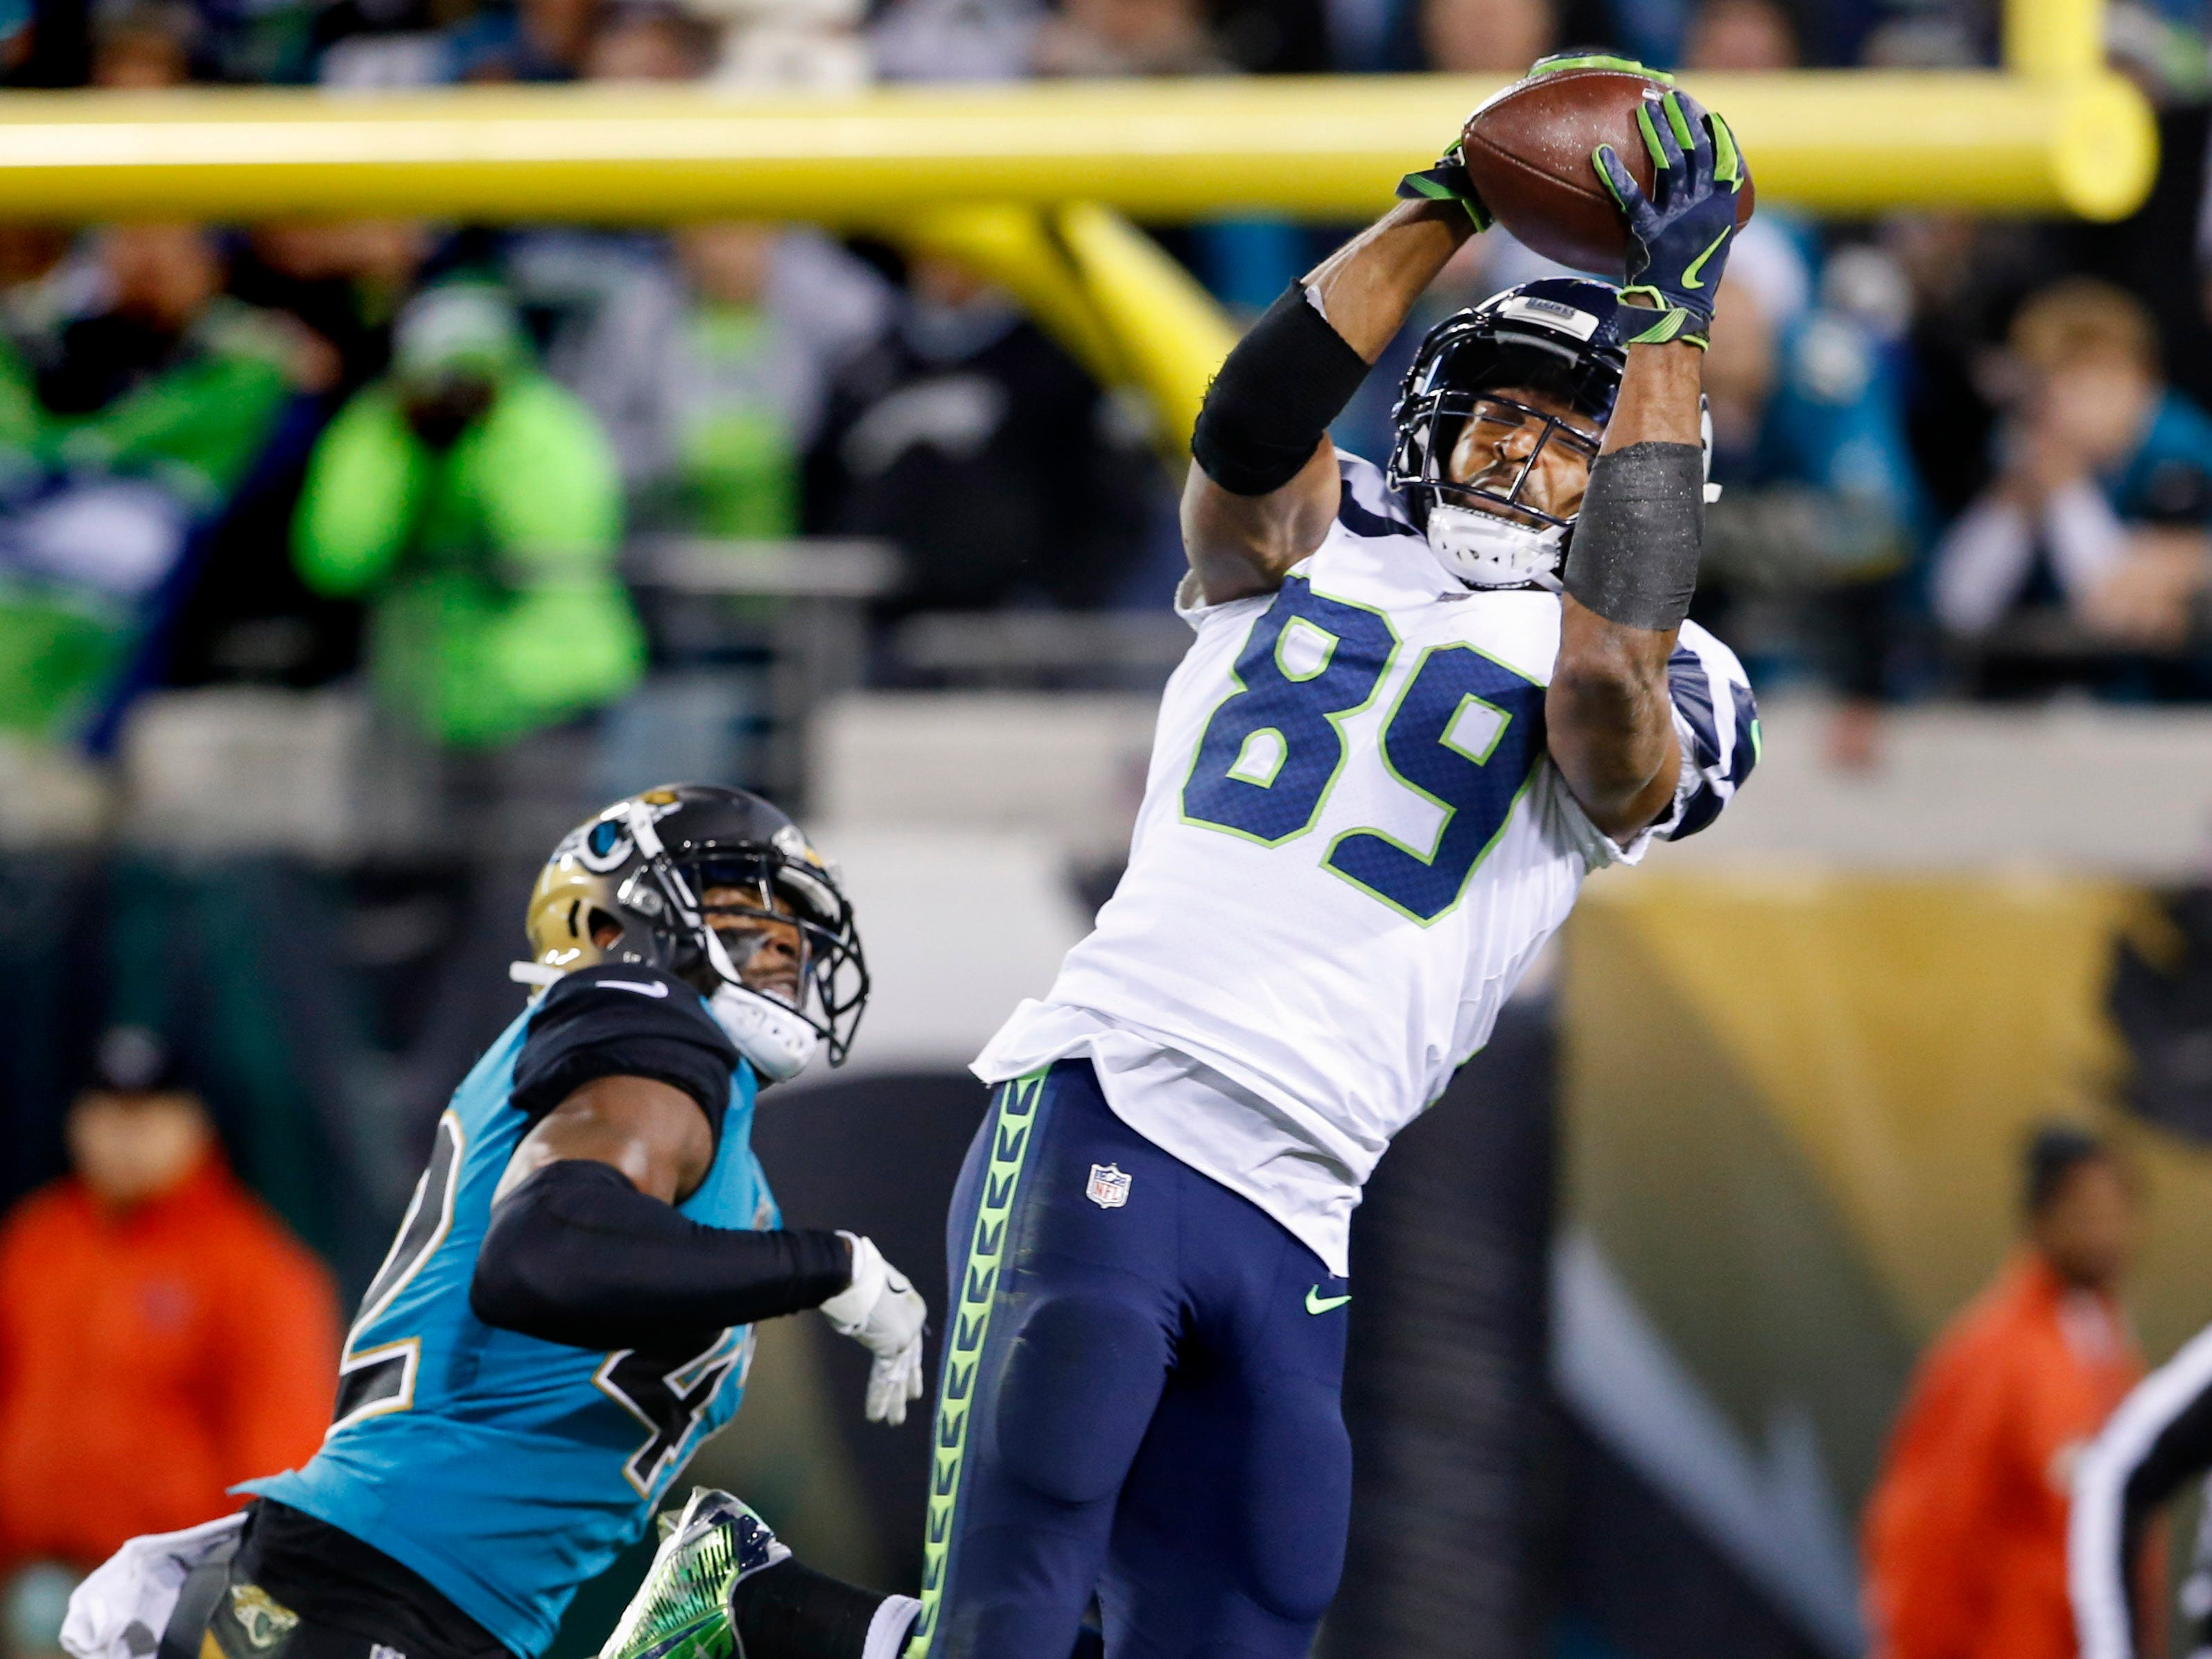 No. 35: Doug Baldwin, WR, Seahawks